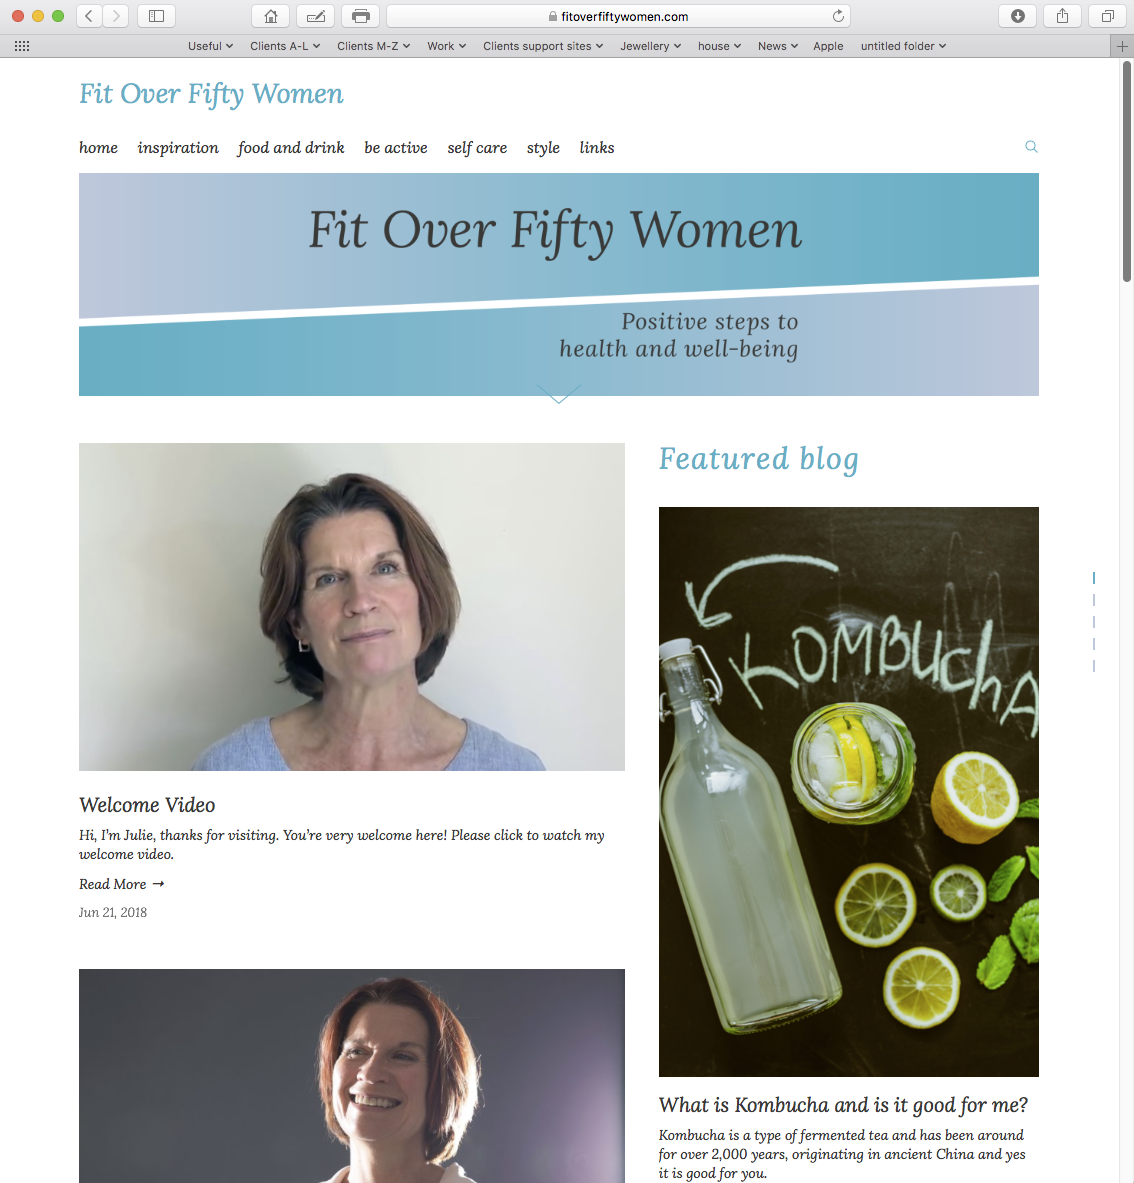 fitoverfiftywomen homepage